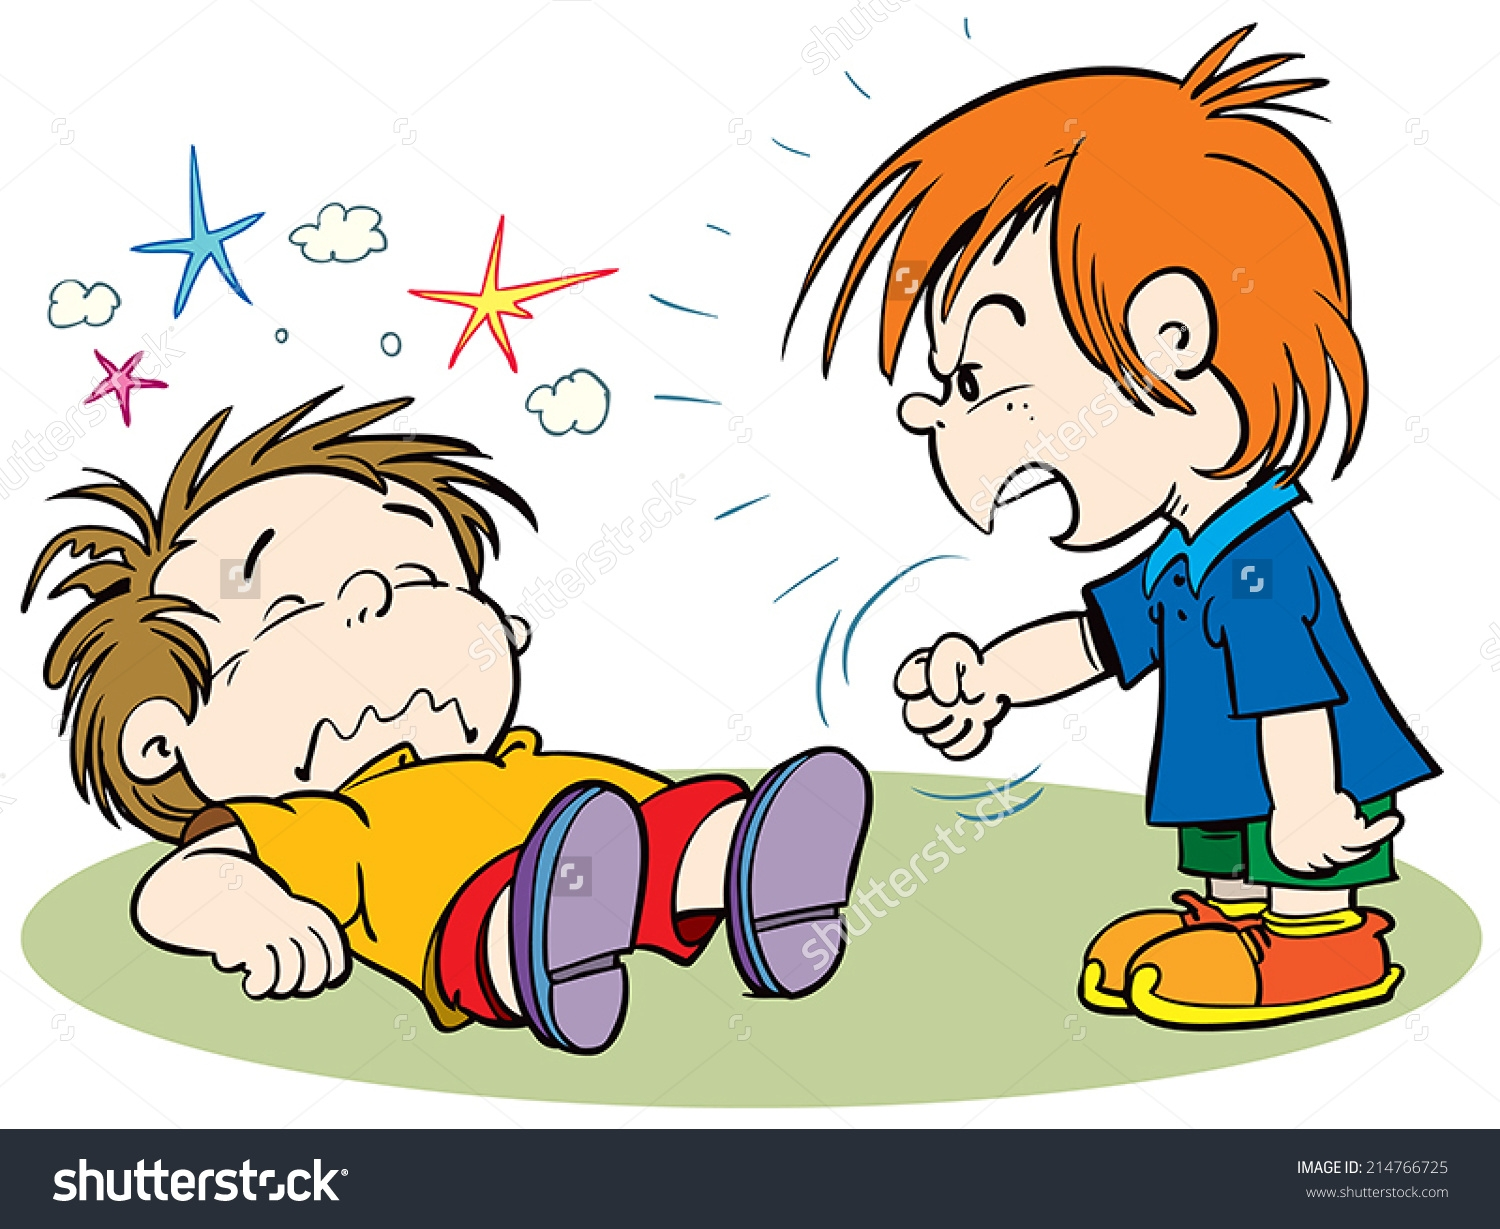 Two Kids Fighting Clipart.